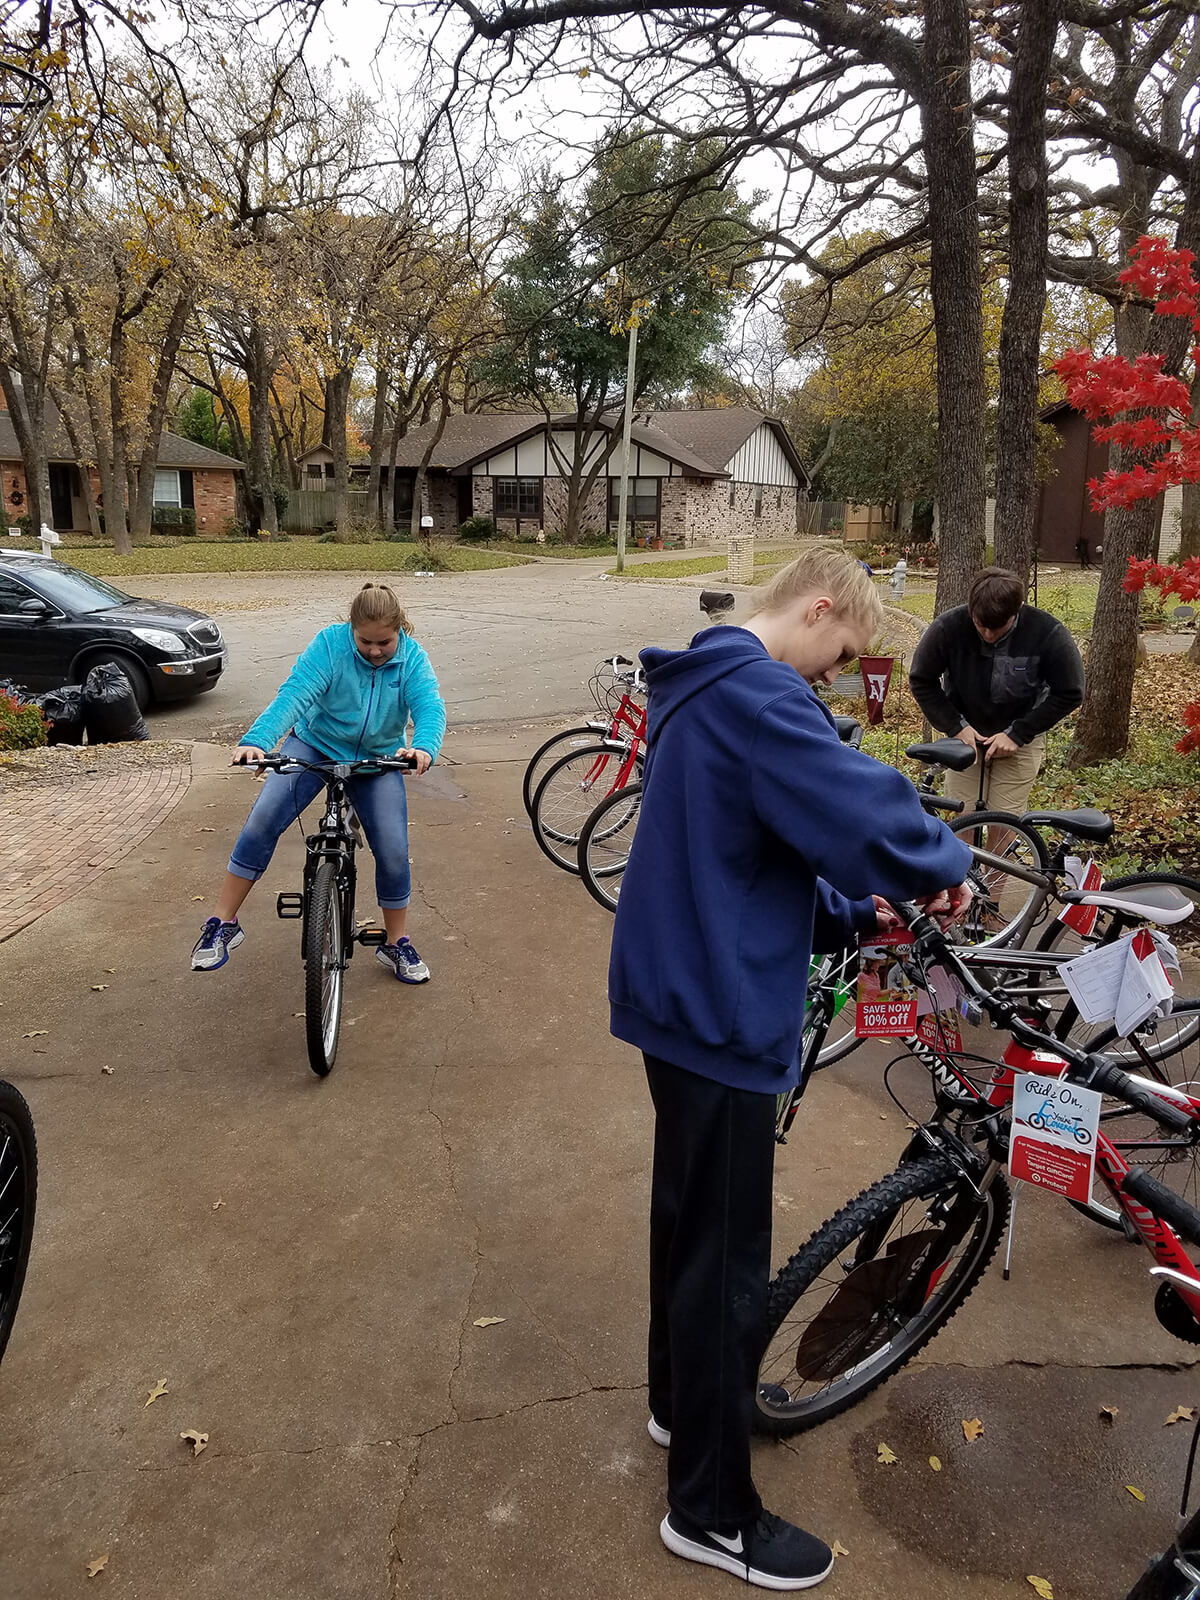 Trey, Audrey and Abby prepping and testing the bikes before delivery